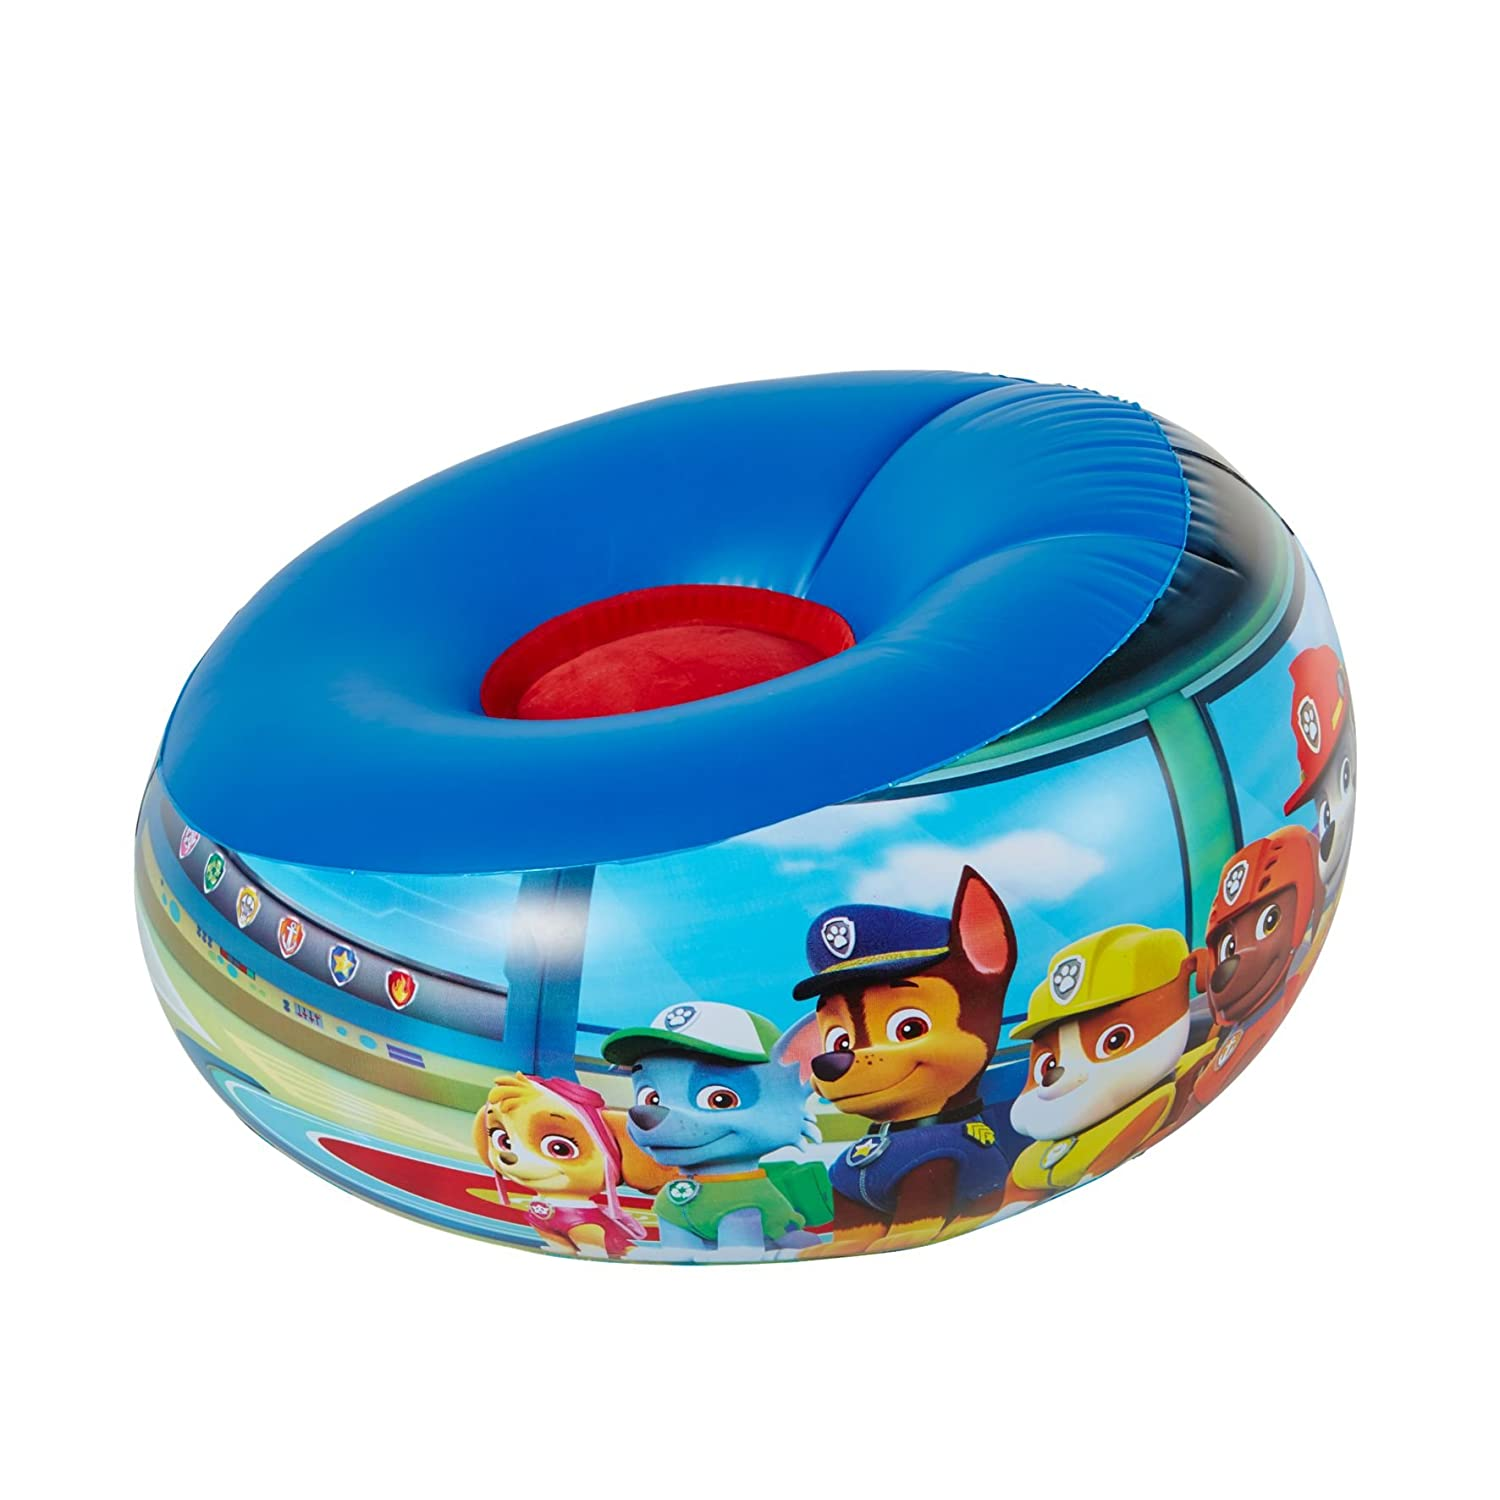 Paw Patrol Inflatable Kids\' Chair: Amazon.co.uk: Kitchen & Home